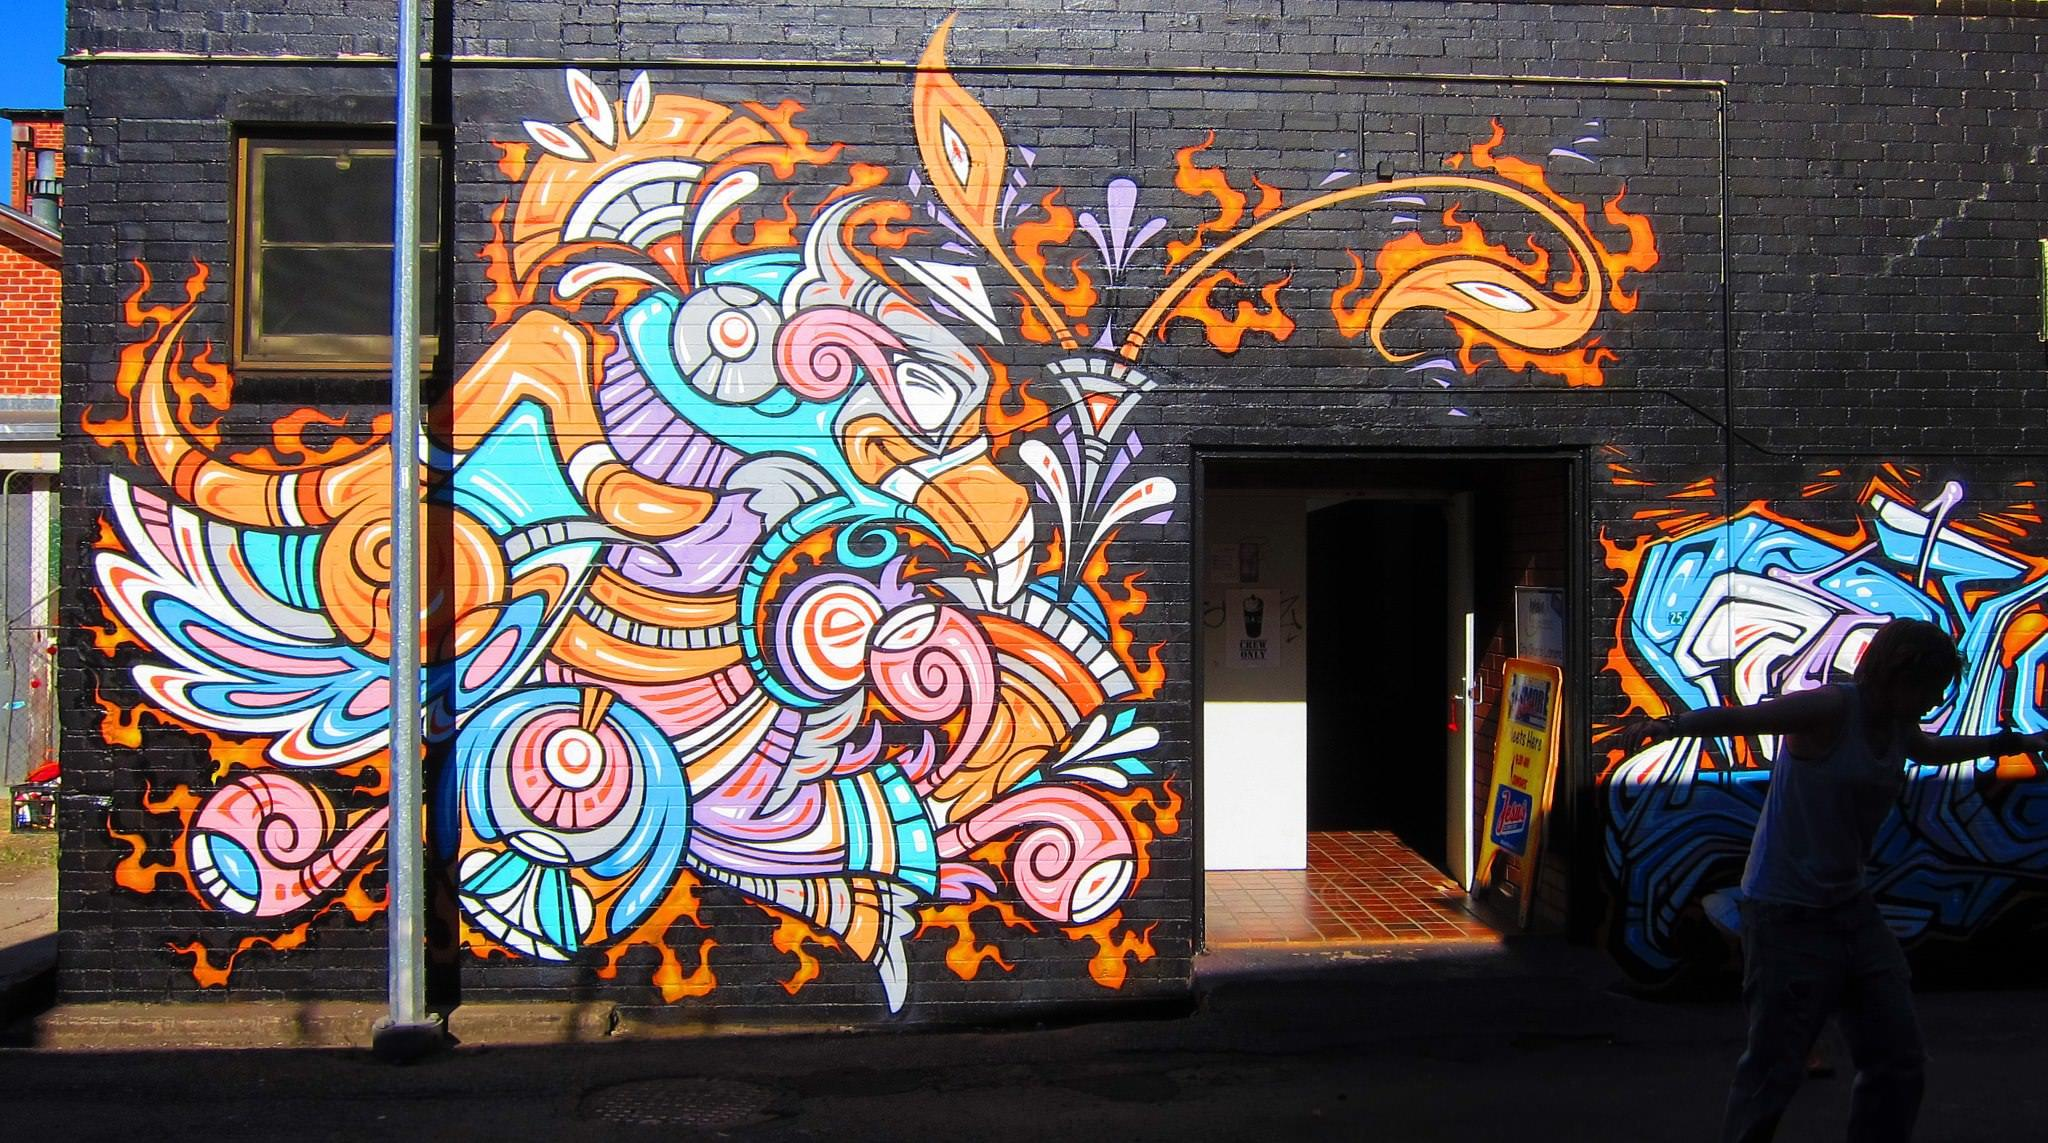 A happy graffiti phoenix smiles at all who enter in this for Call for mural artists 2014